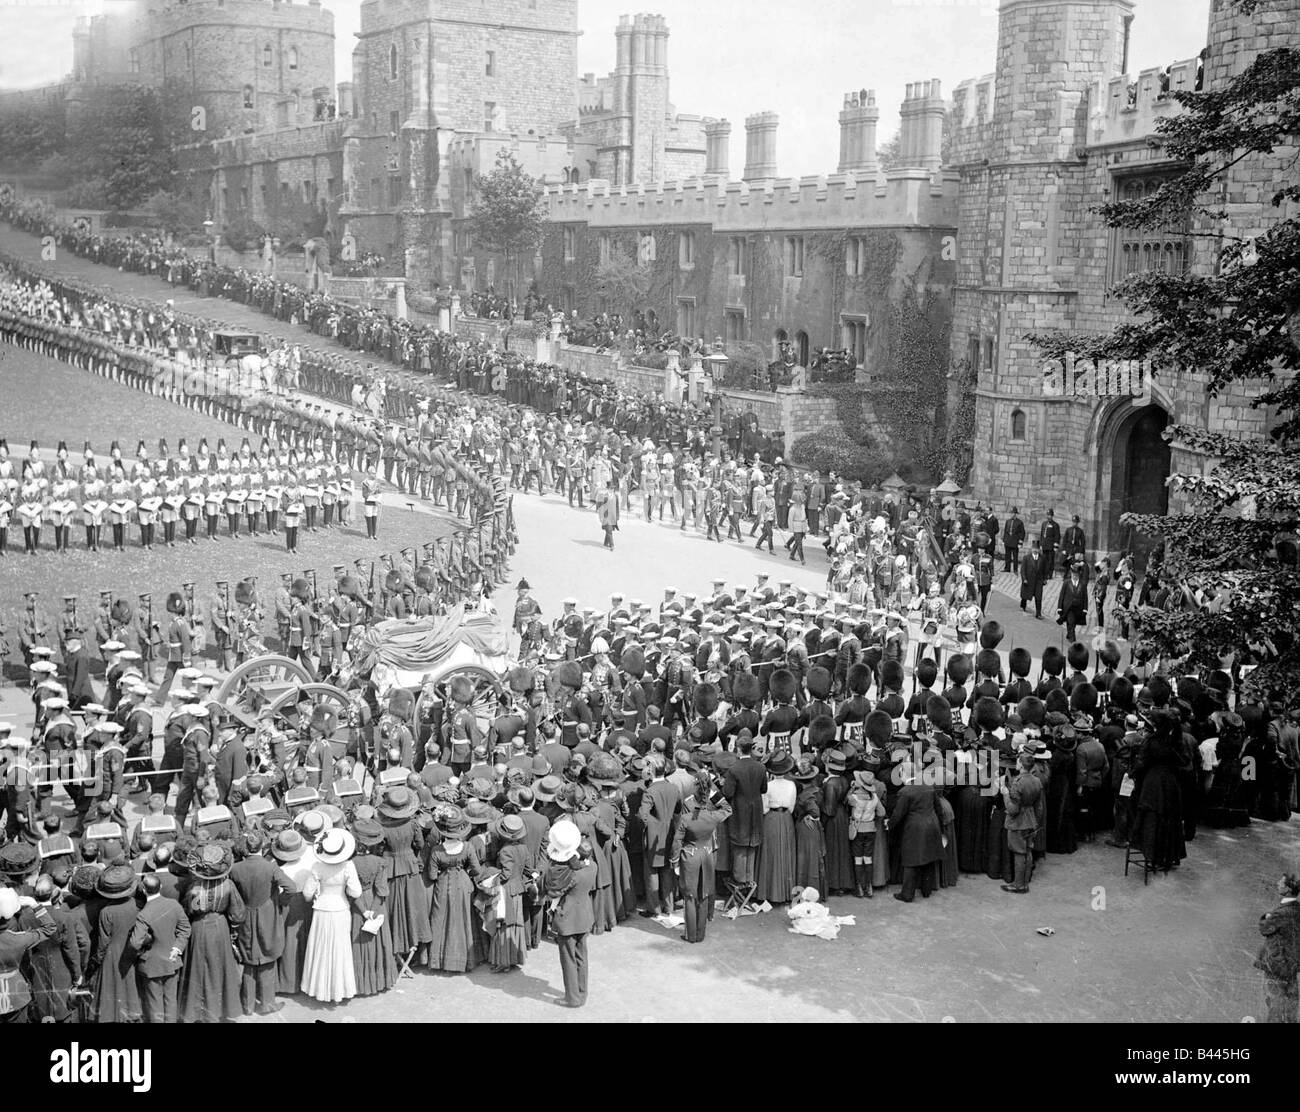 King Edward VII May 1910 Funeral Procession Edward VII was born on November 9 1841 the eldest son of Queen Victoria - Stock Image